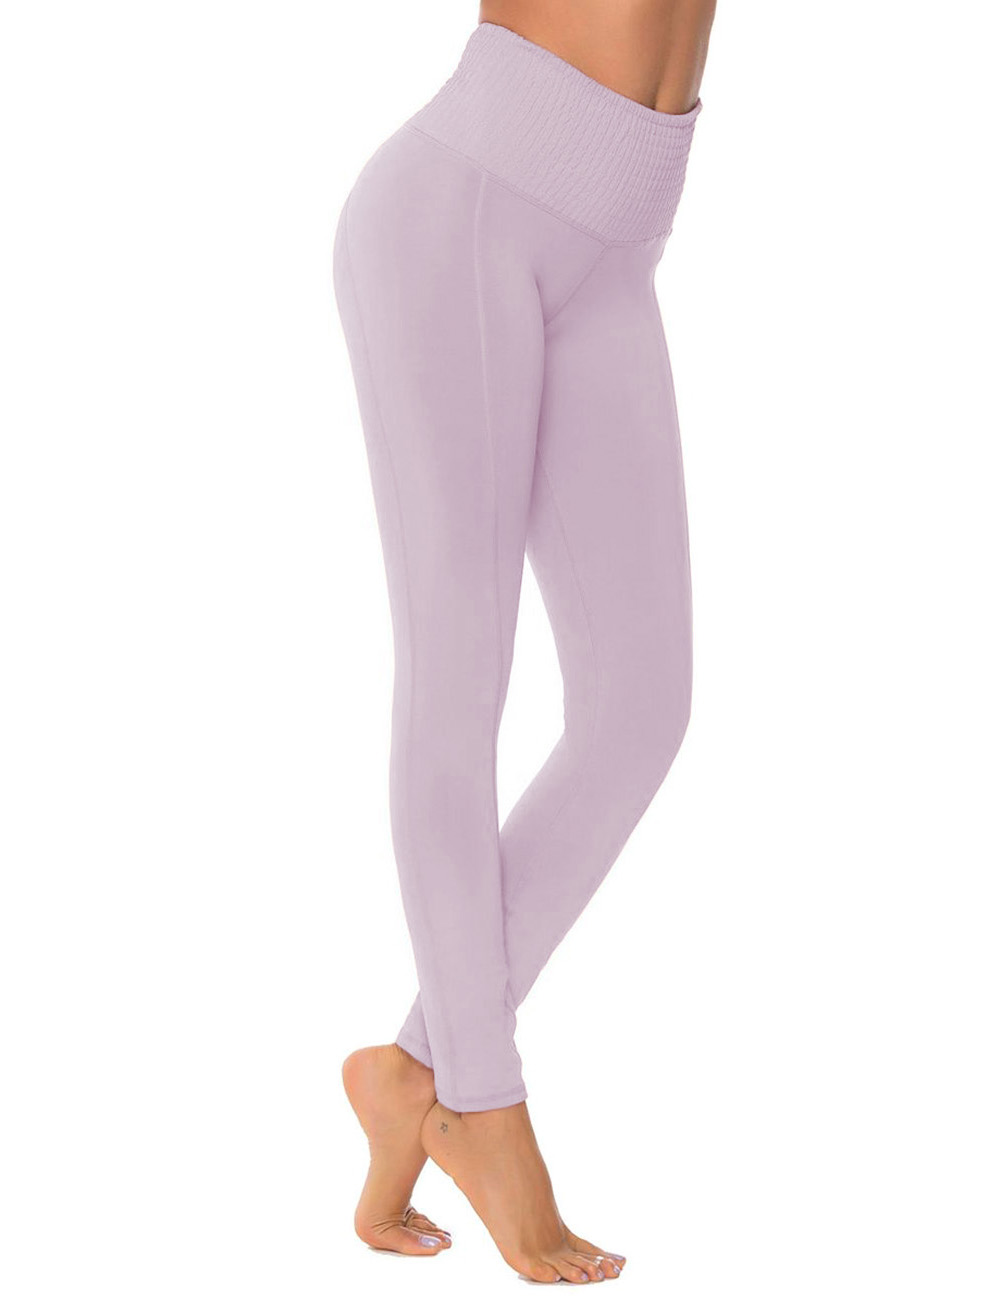 //cdn.affectcloud.com/hexinfashion/upload/imgs/Sportswear/Yoga_Legging/YD190087-PL3/YD190087-PL3-201911025dbd2b408ea80.jpg